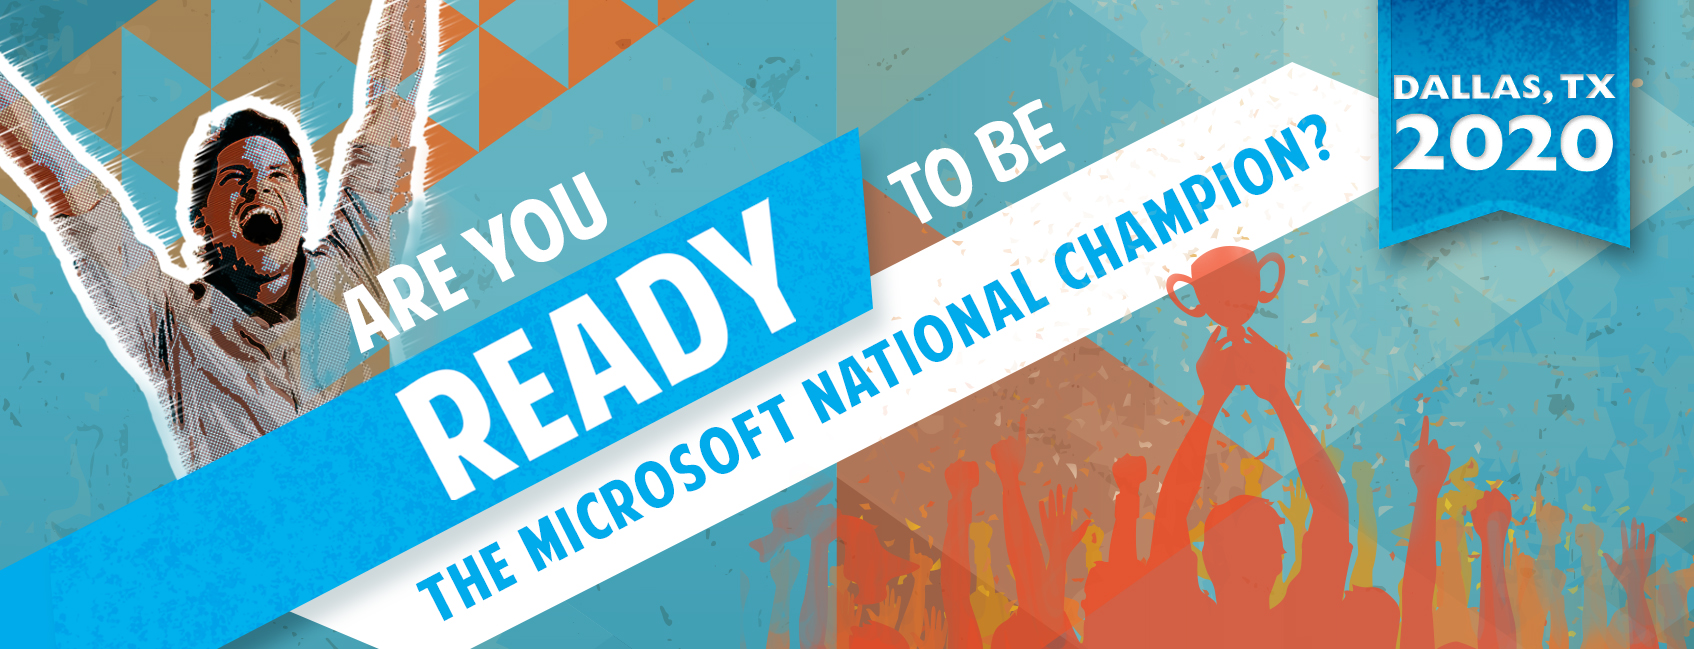 Microsoft Office Specialist World Championship